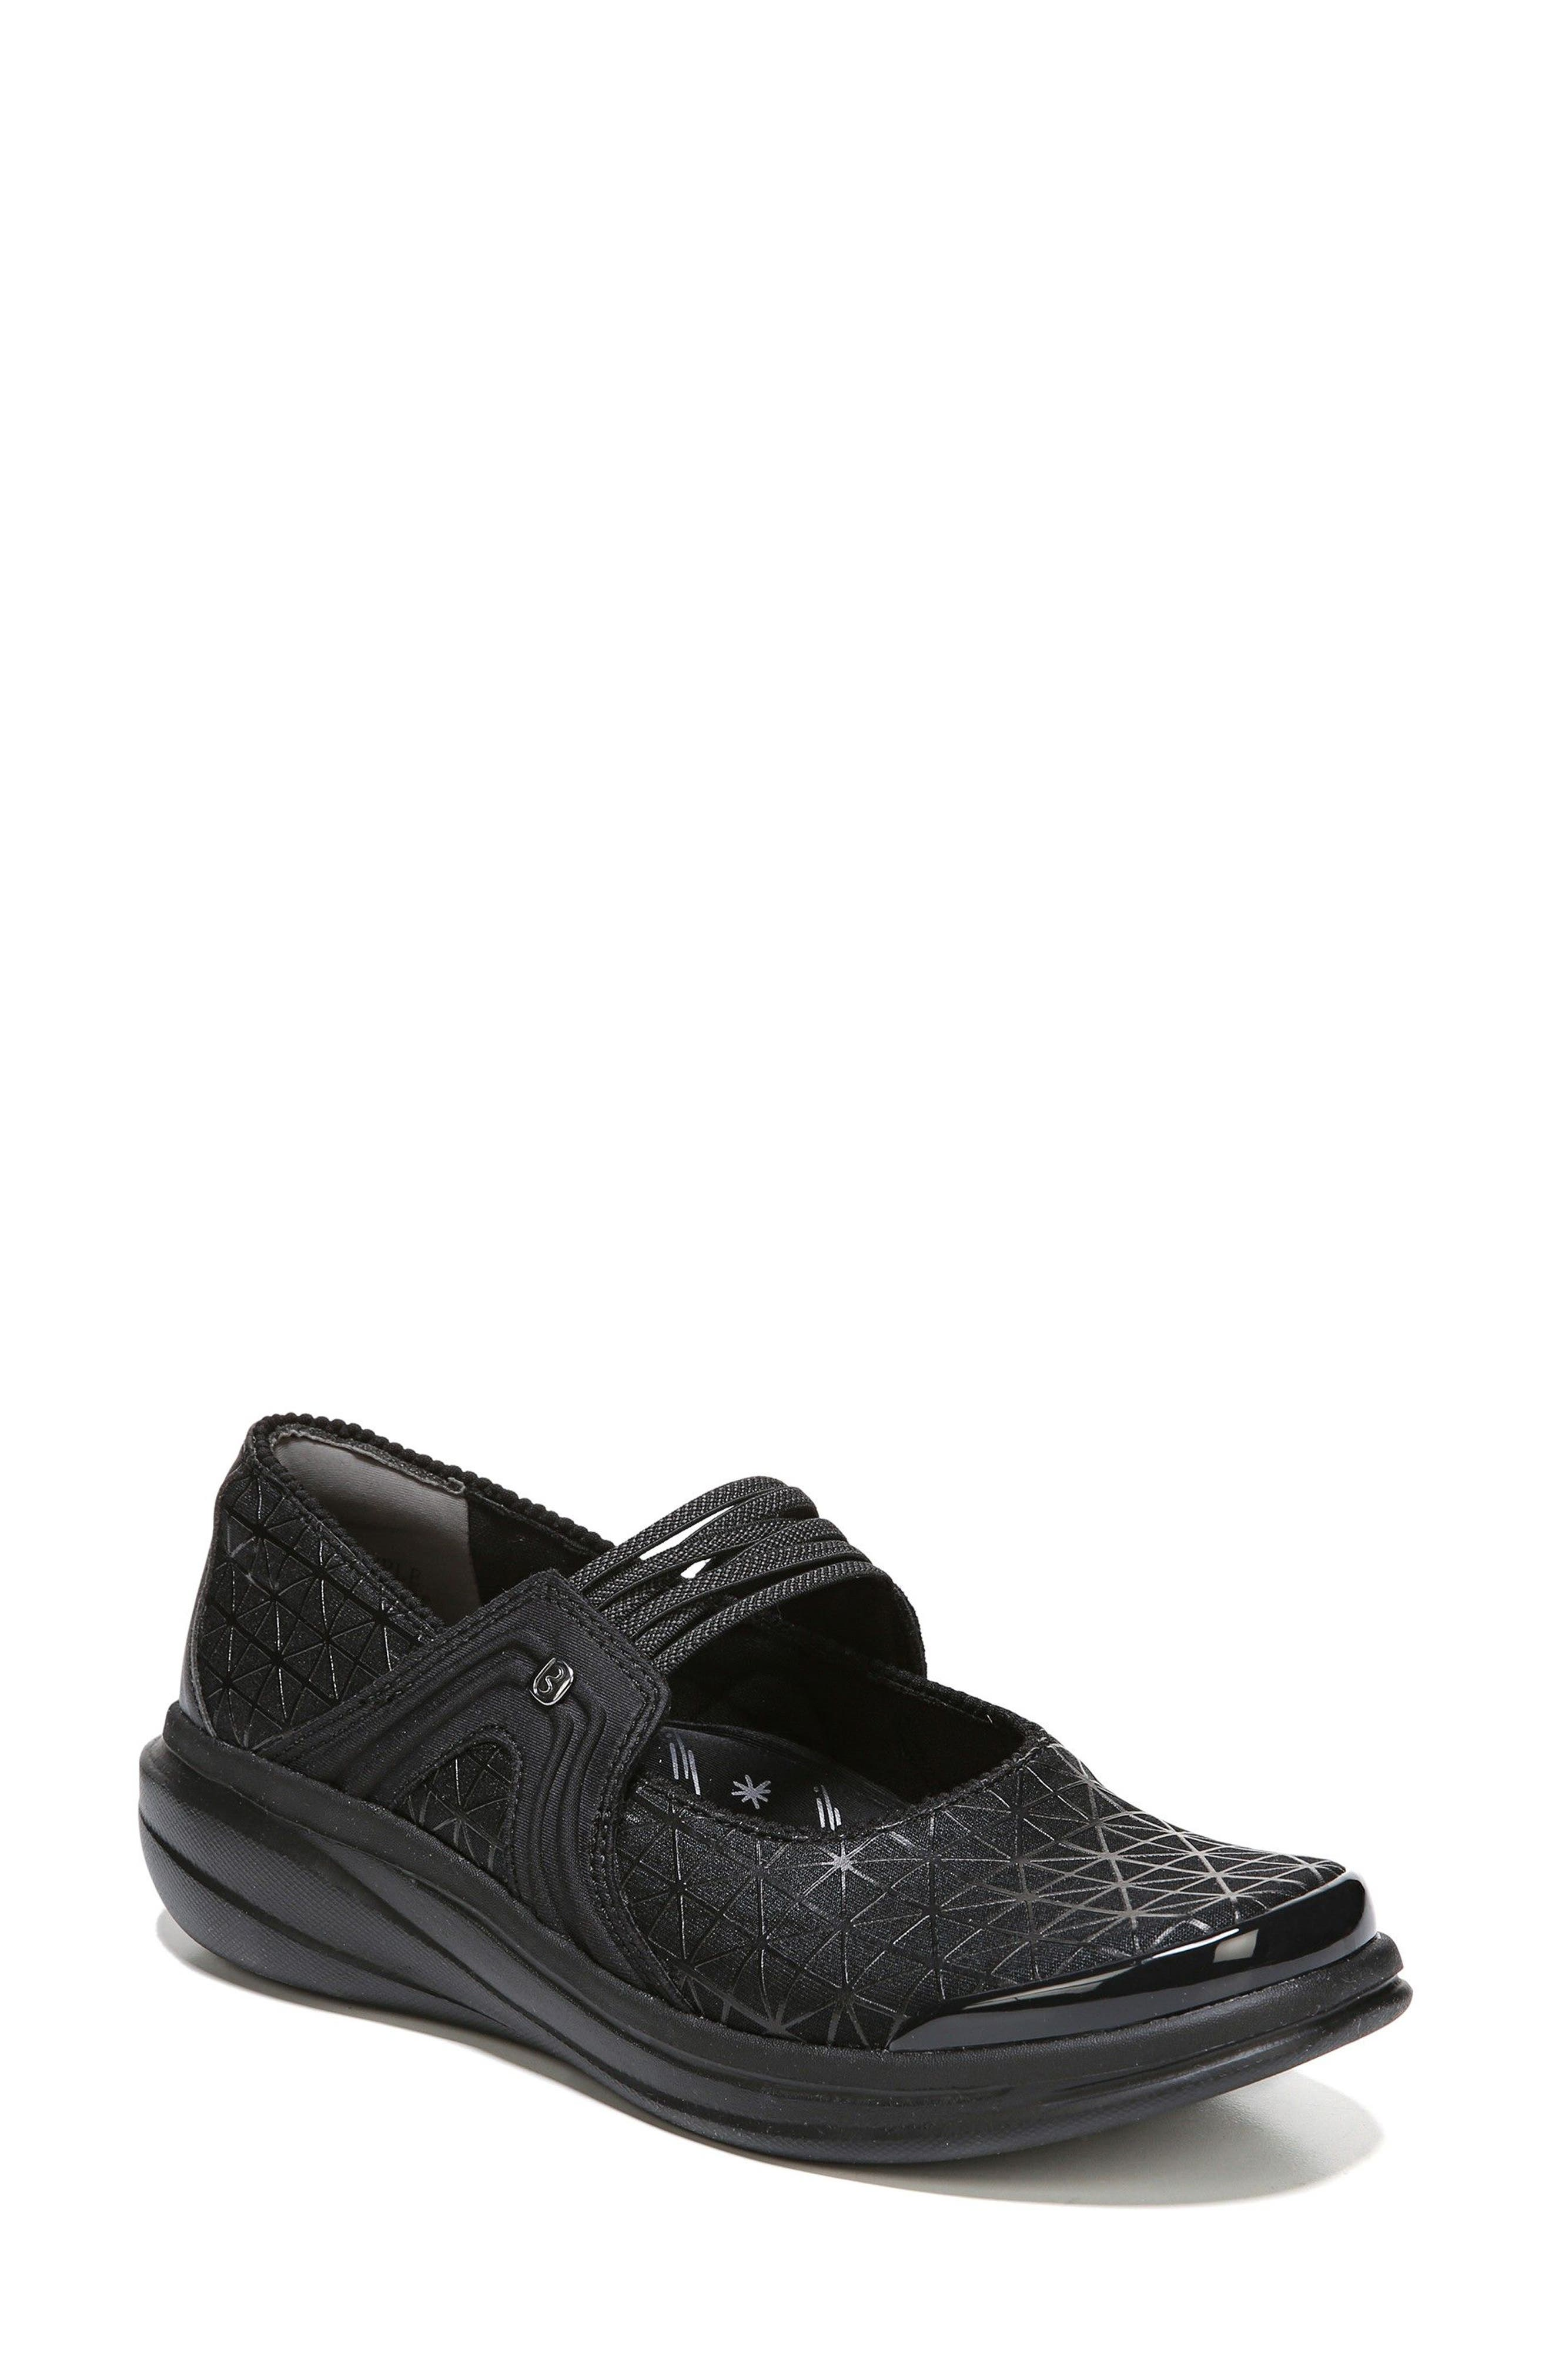 Candy Mary Jane Sneaker,                         Main,                         color, 001